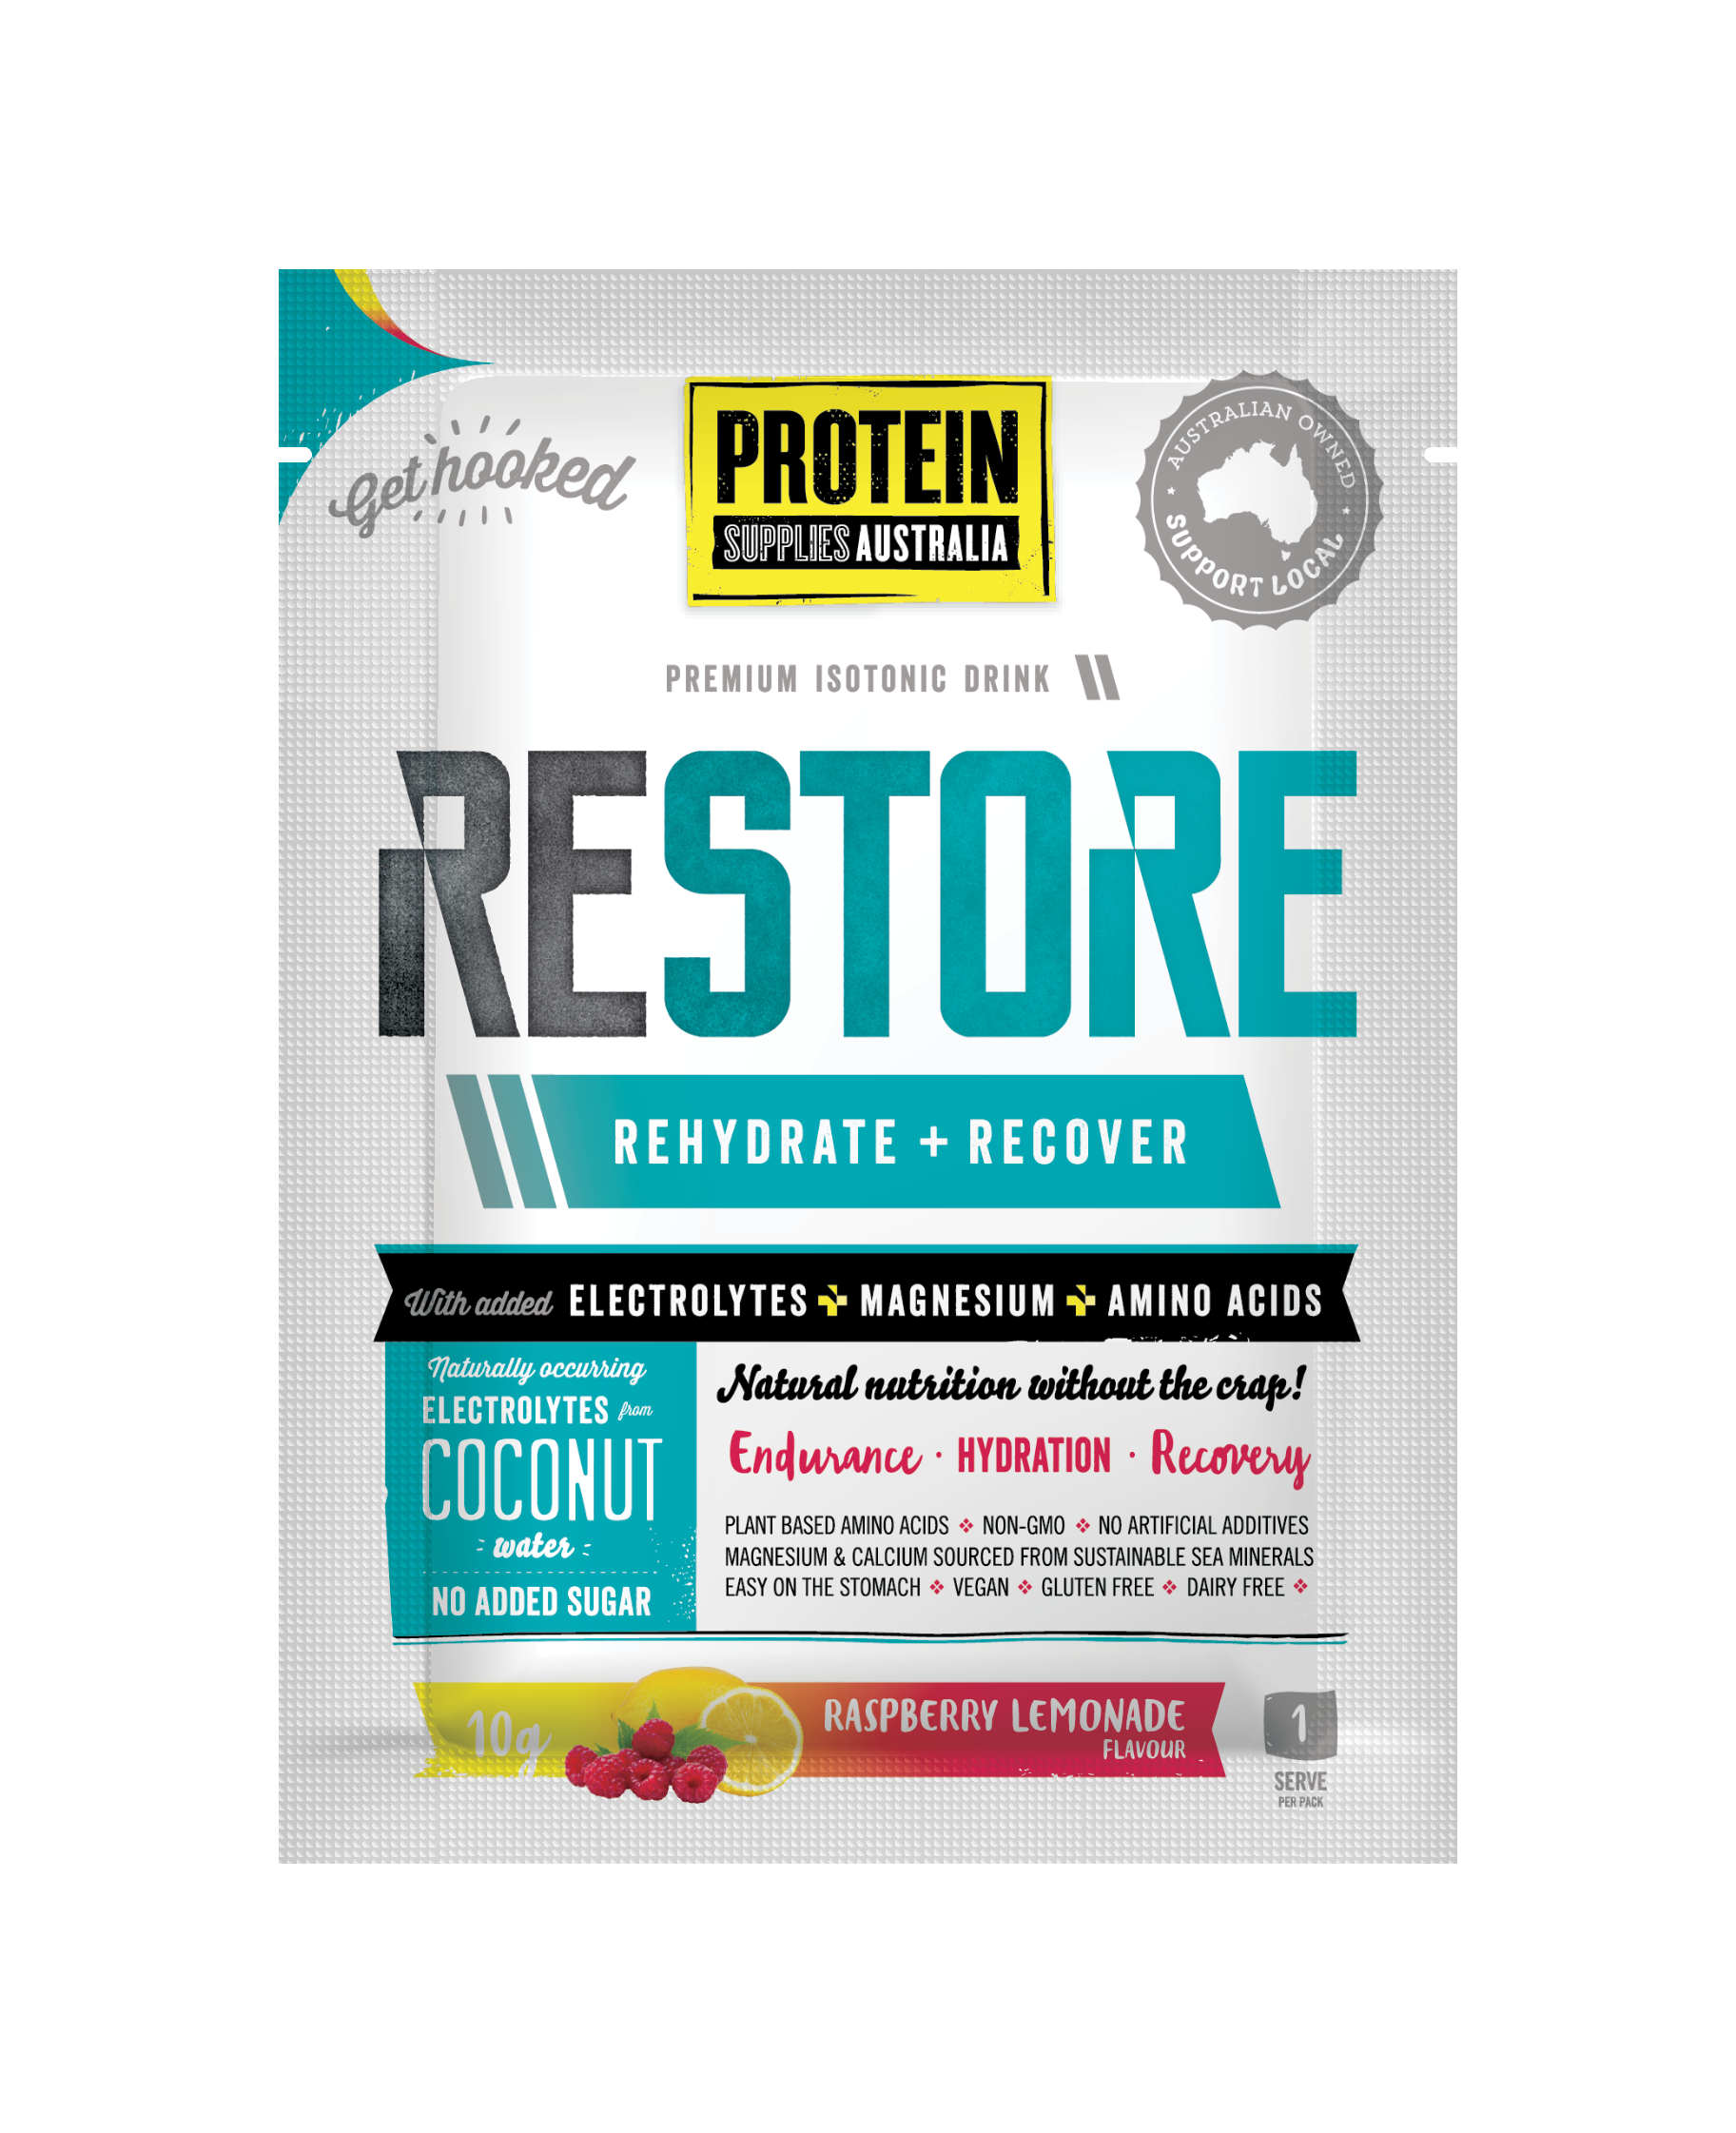 Restore Raspberry Lemonade